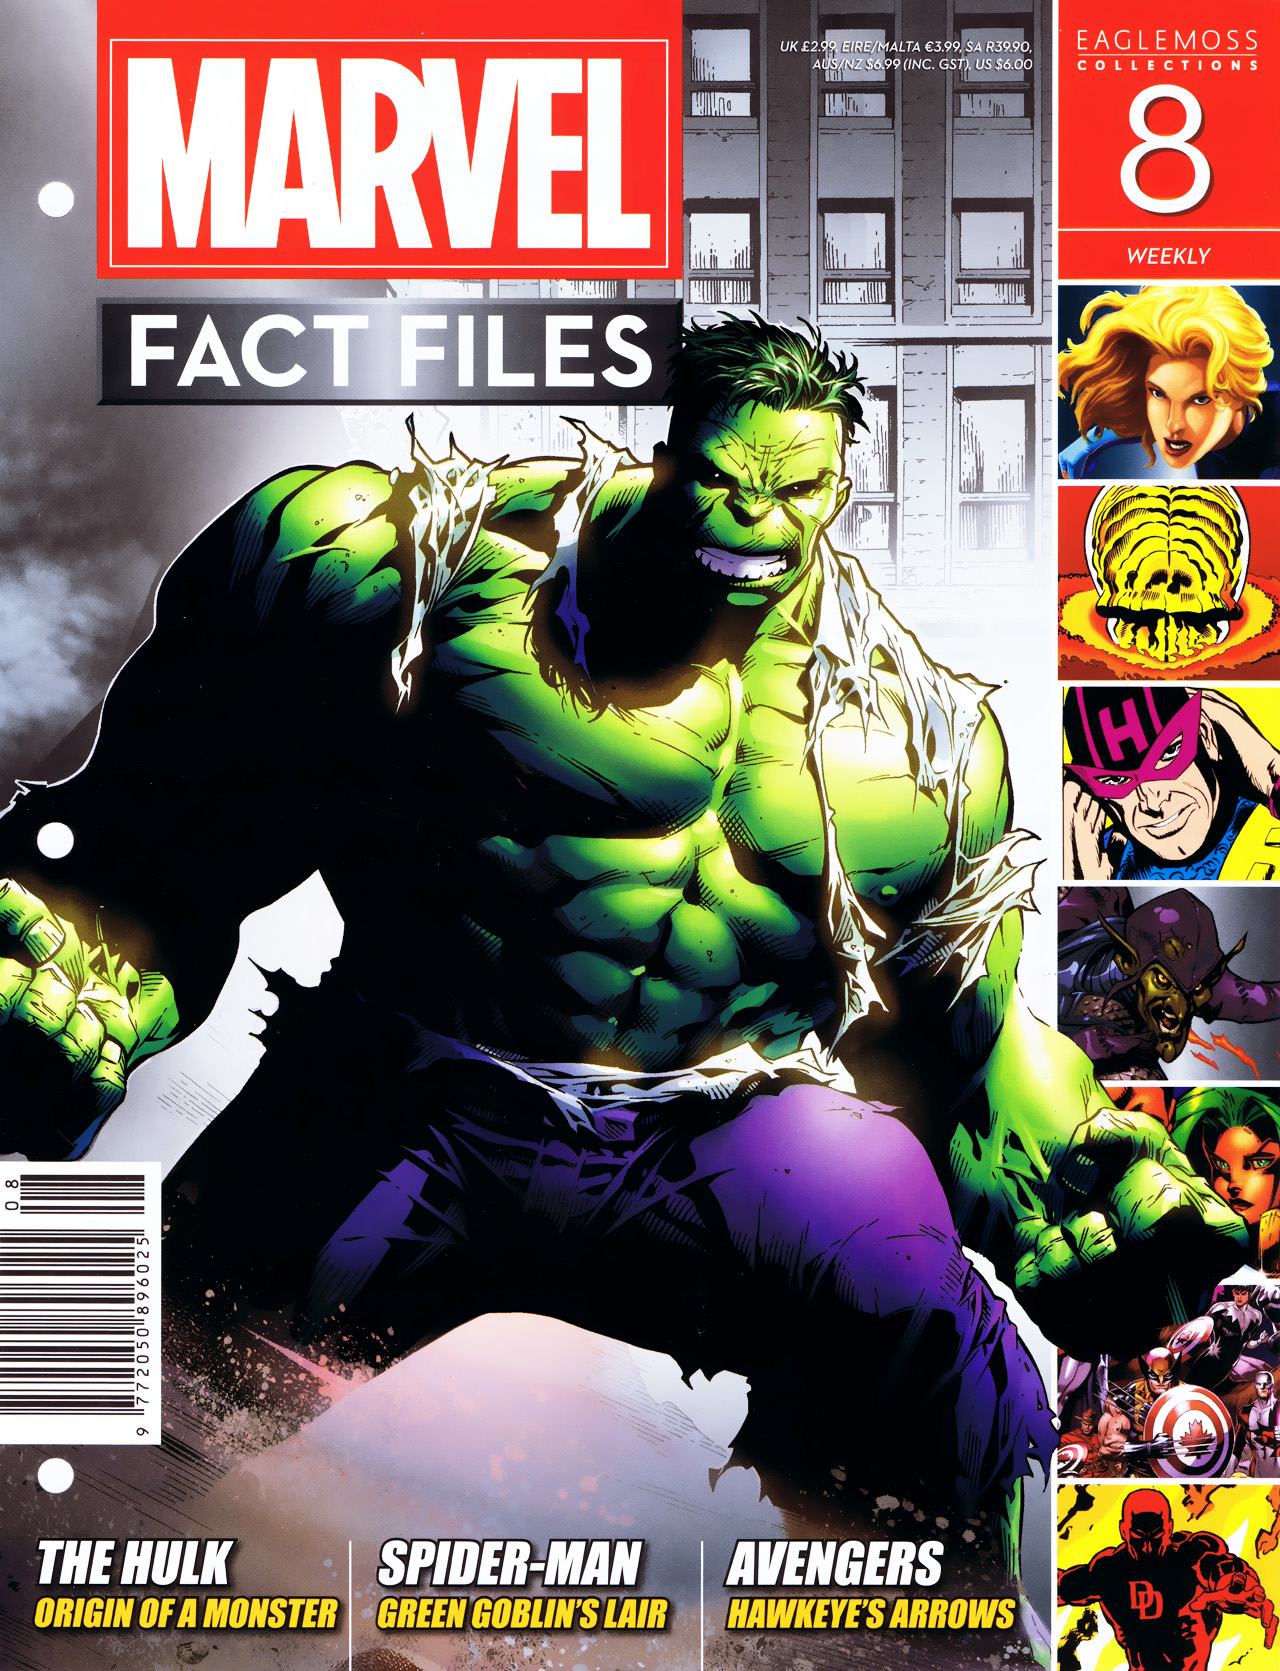 Marvel Fact Files 8 Page 1